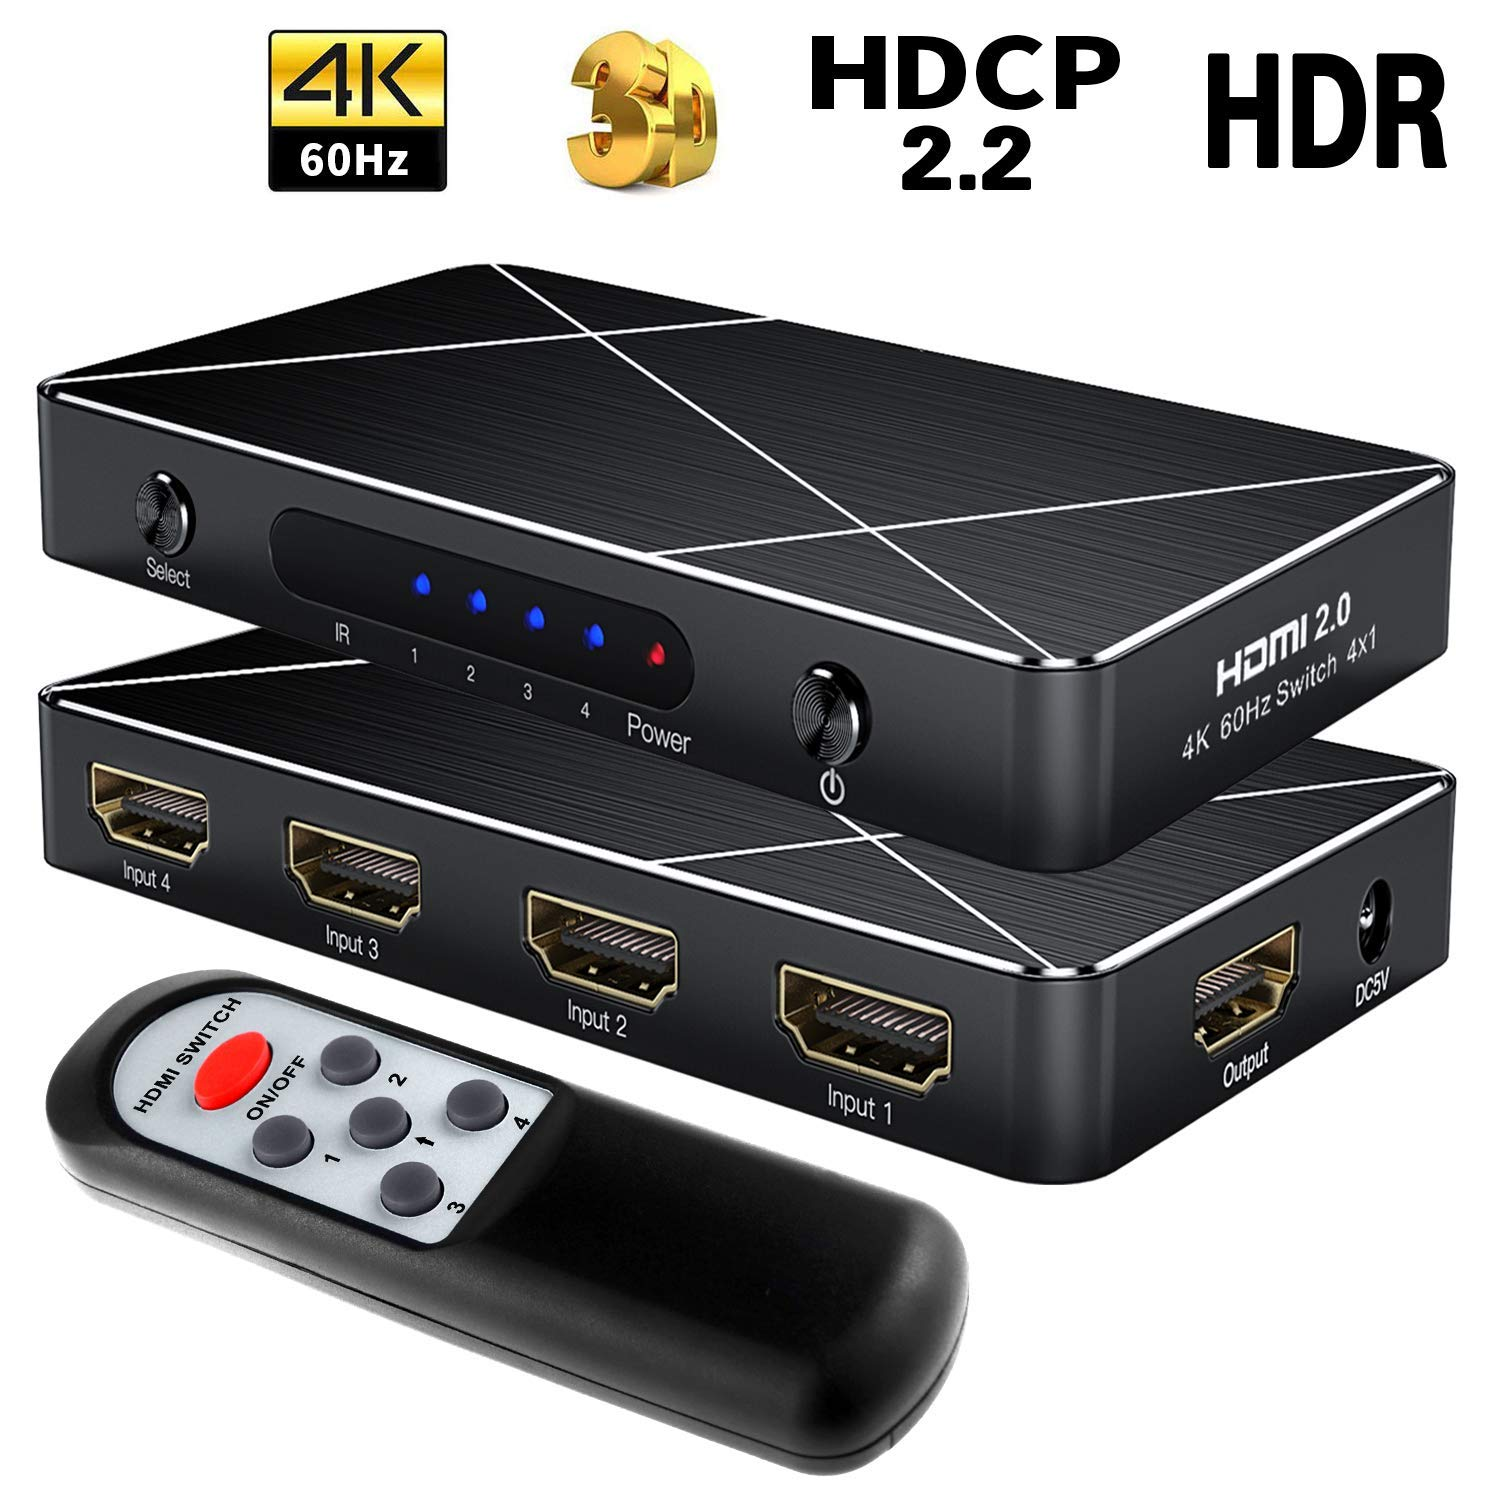 SGEYR HDMI Selector Switcher 4x1 HDMI 2.0 Switch 4 in 1 Out HDMI Switch 4 Port with IR Remote, HDMI 2.0 HDCP 2.2 Support 4K@60Hz Full HD 1080P, 3D, PS3/PS4, Fire TV, PS4 Pro and More(4 in 1 Out)